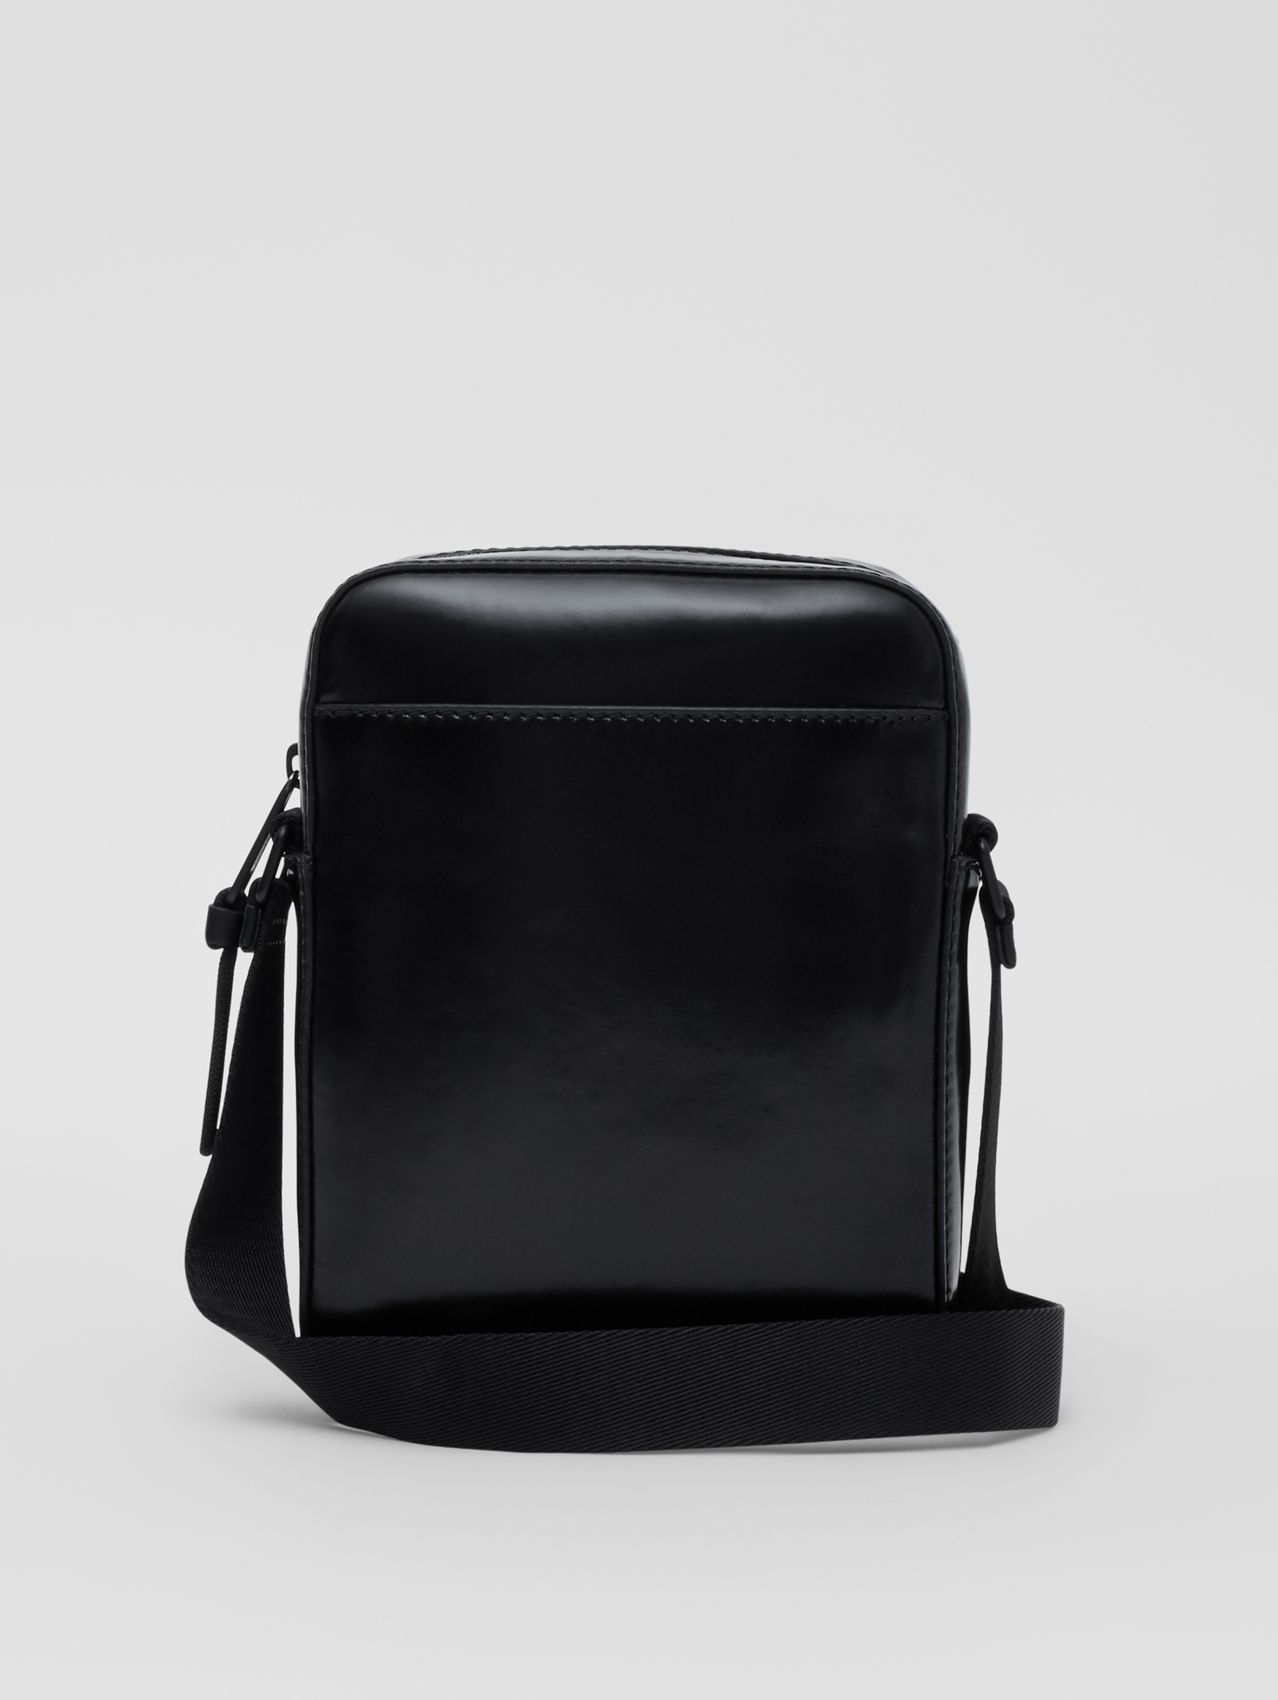 Logo and Icon Stripe Print Crossbody Bag in Black